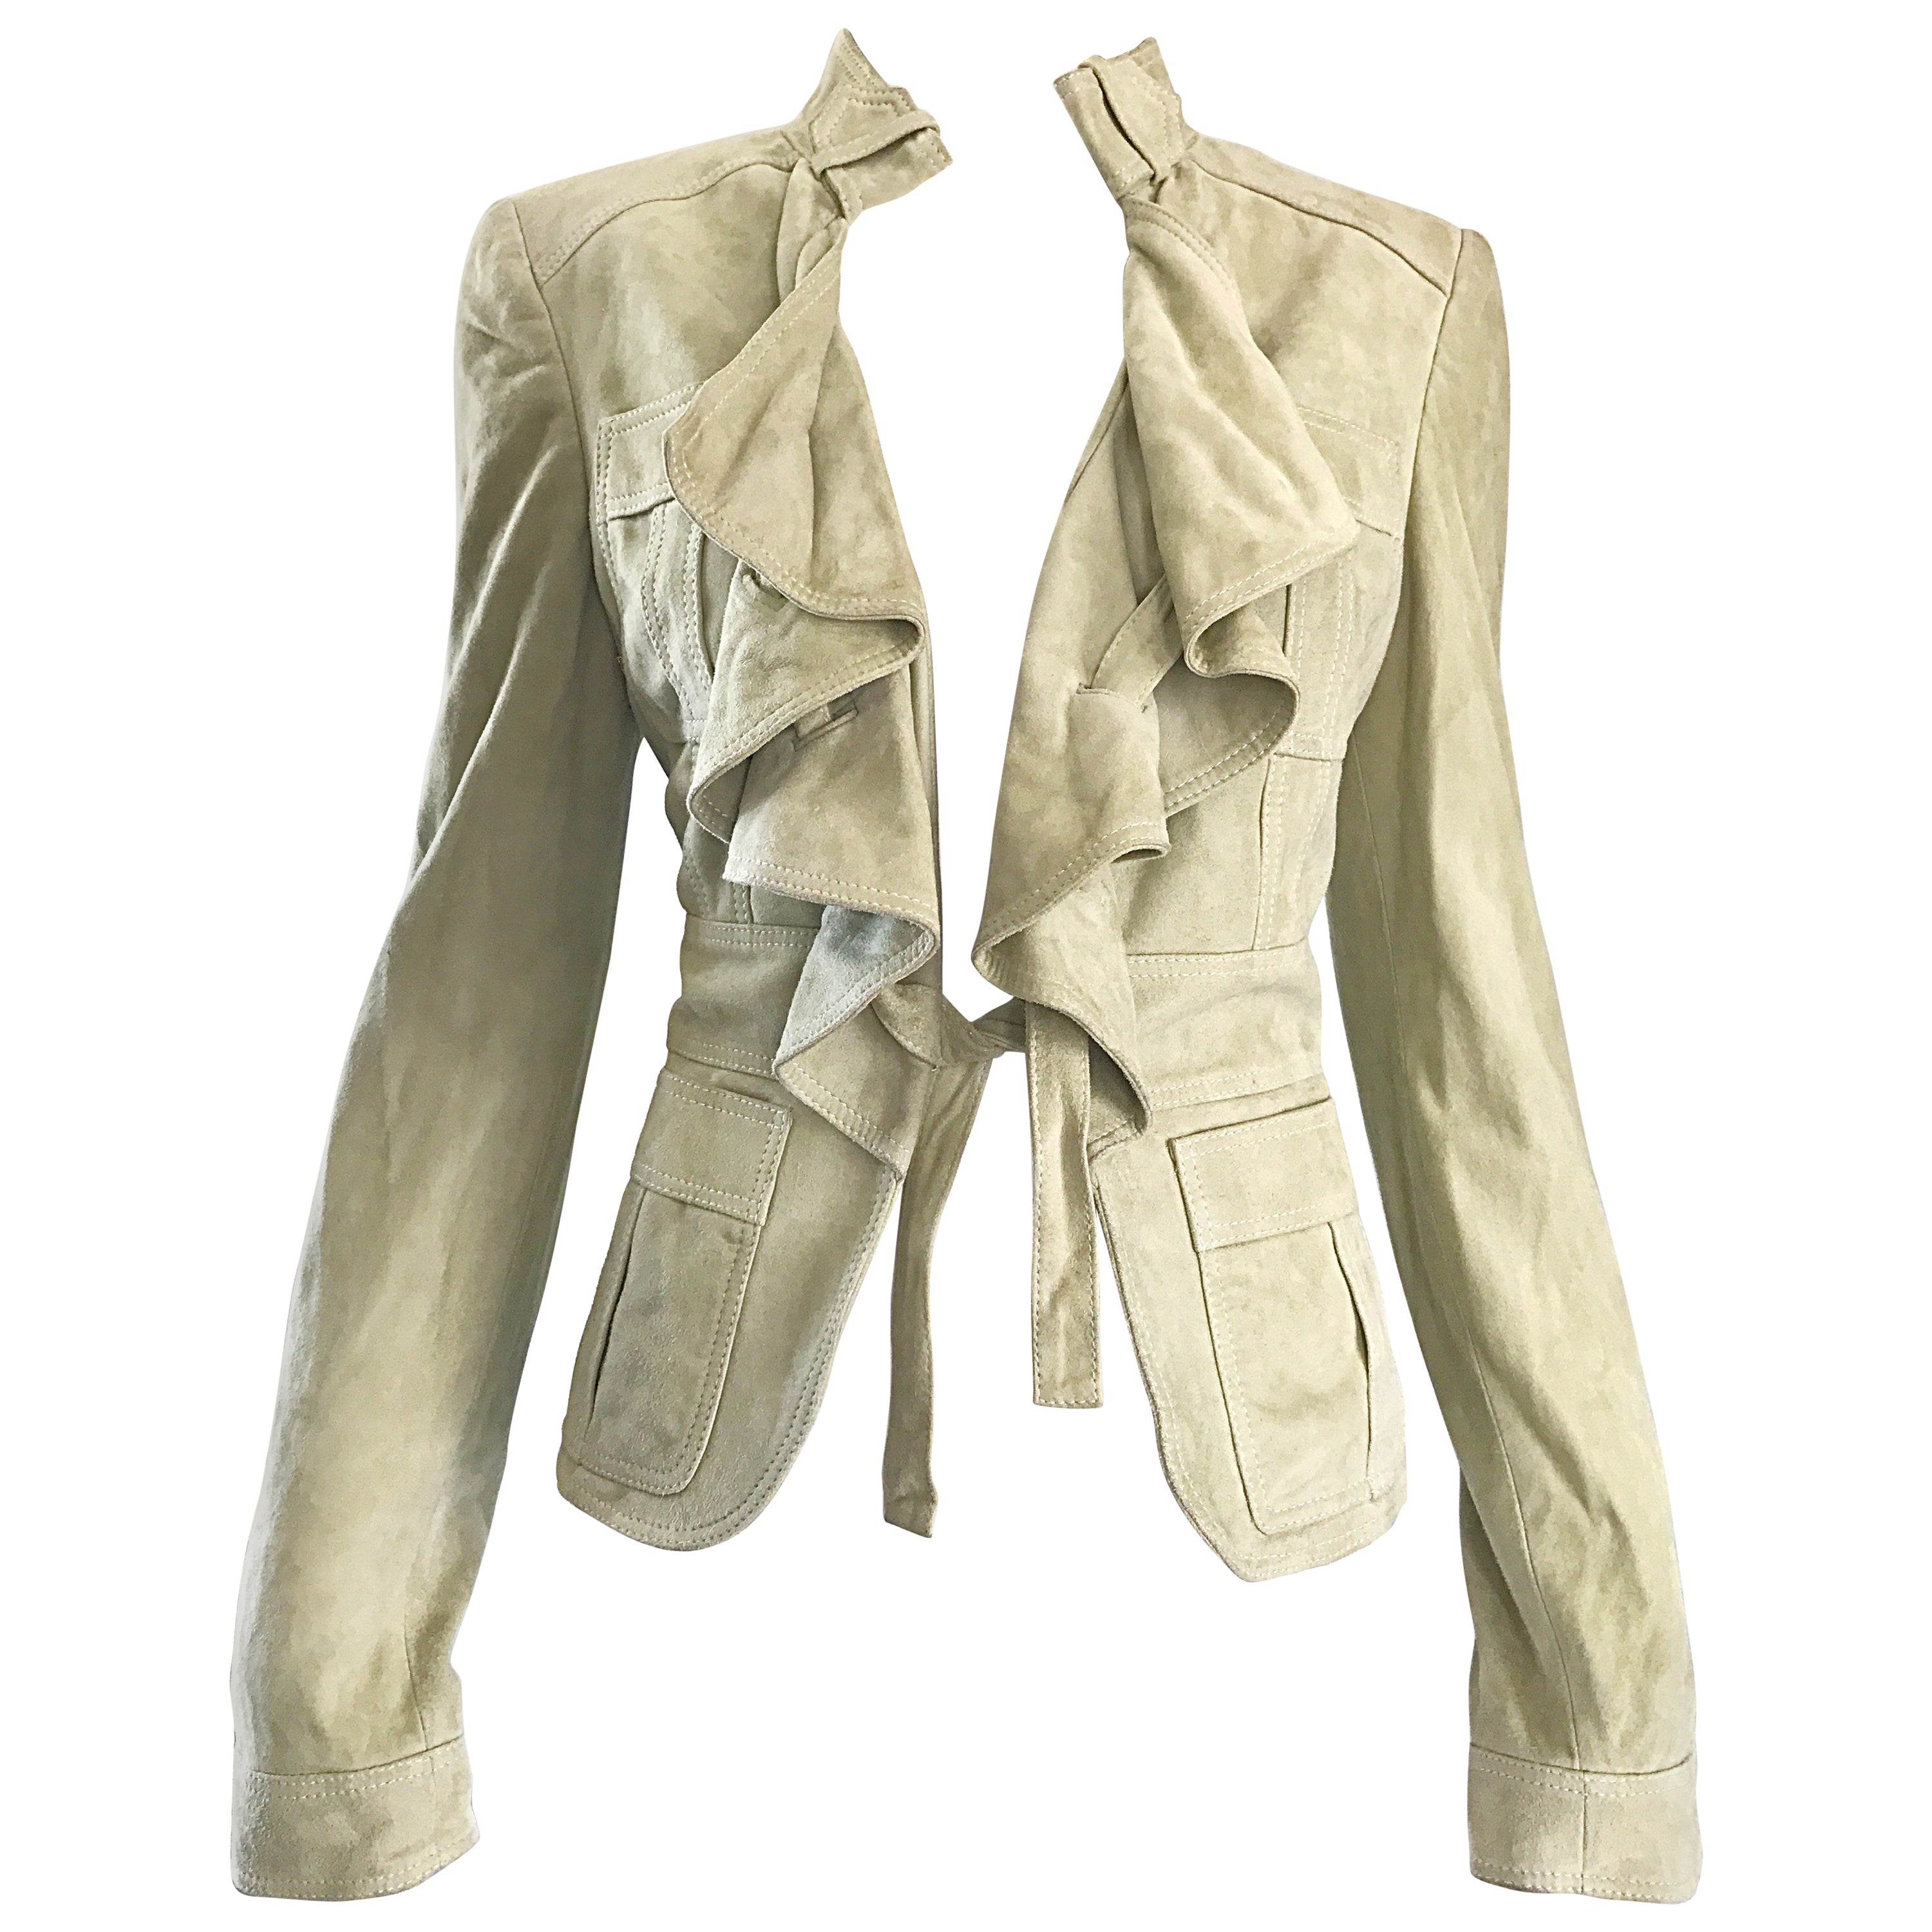 Tom Ford for Gucci Pistachio Khaki Suede Leather 1990s Vintage Ruffle Jacket